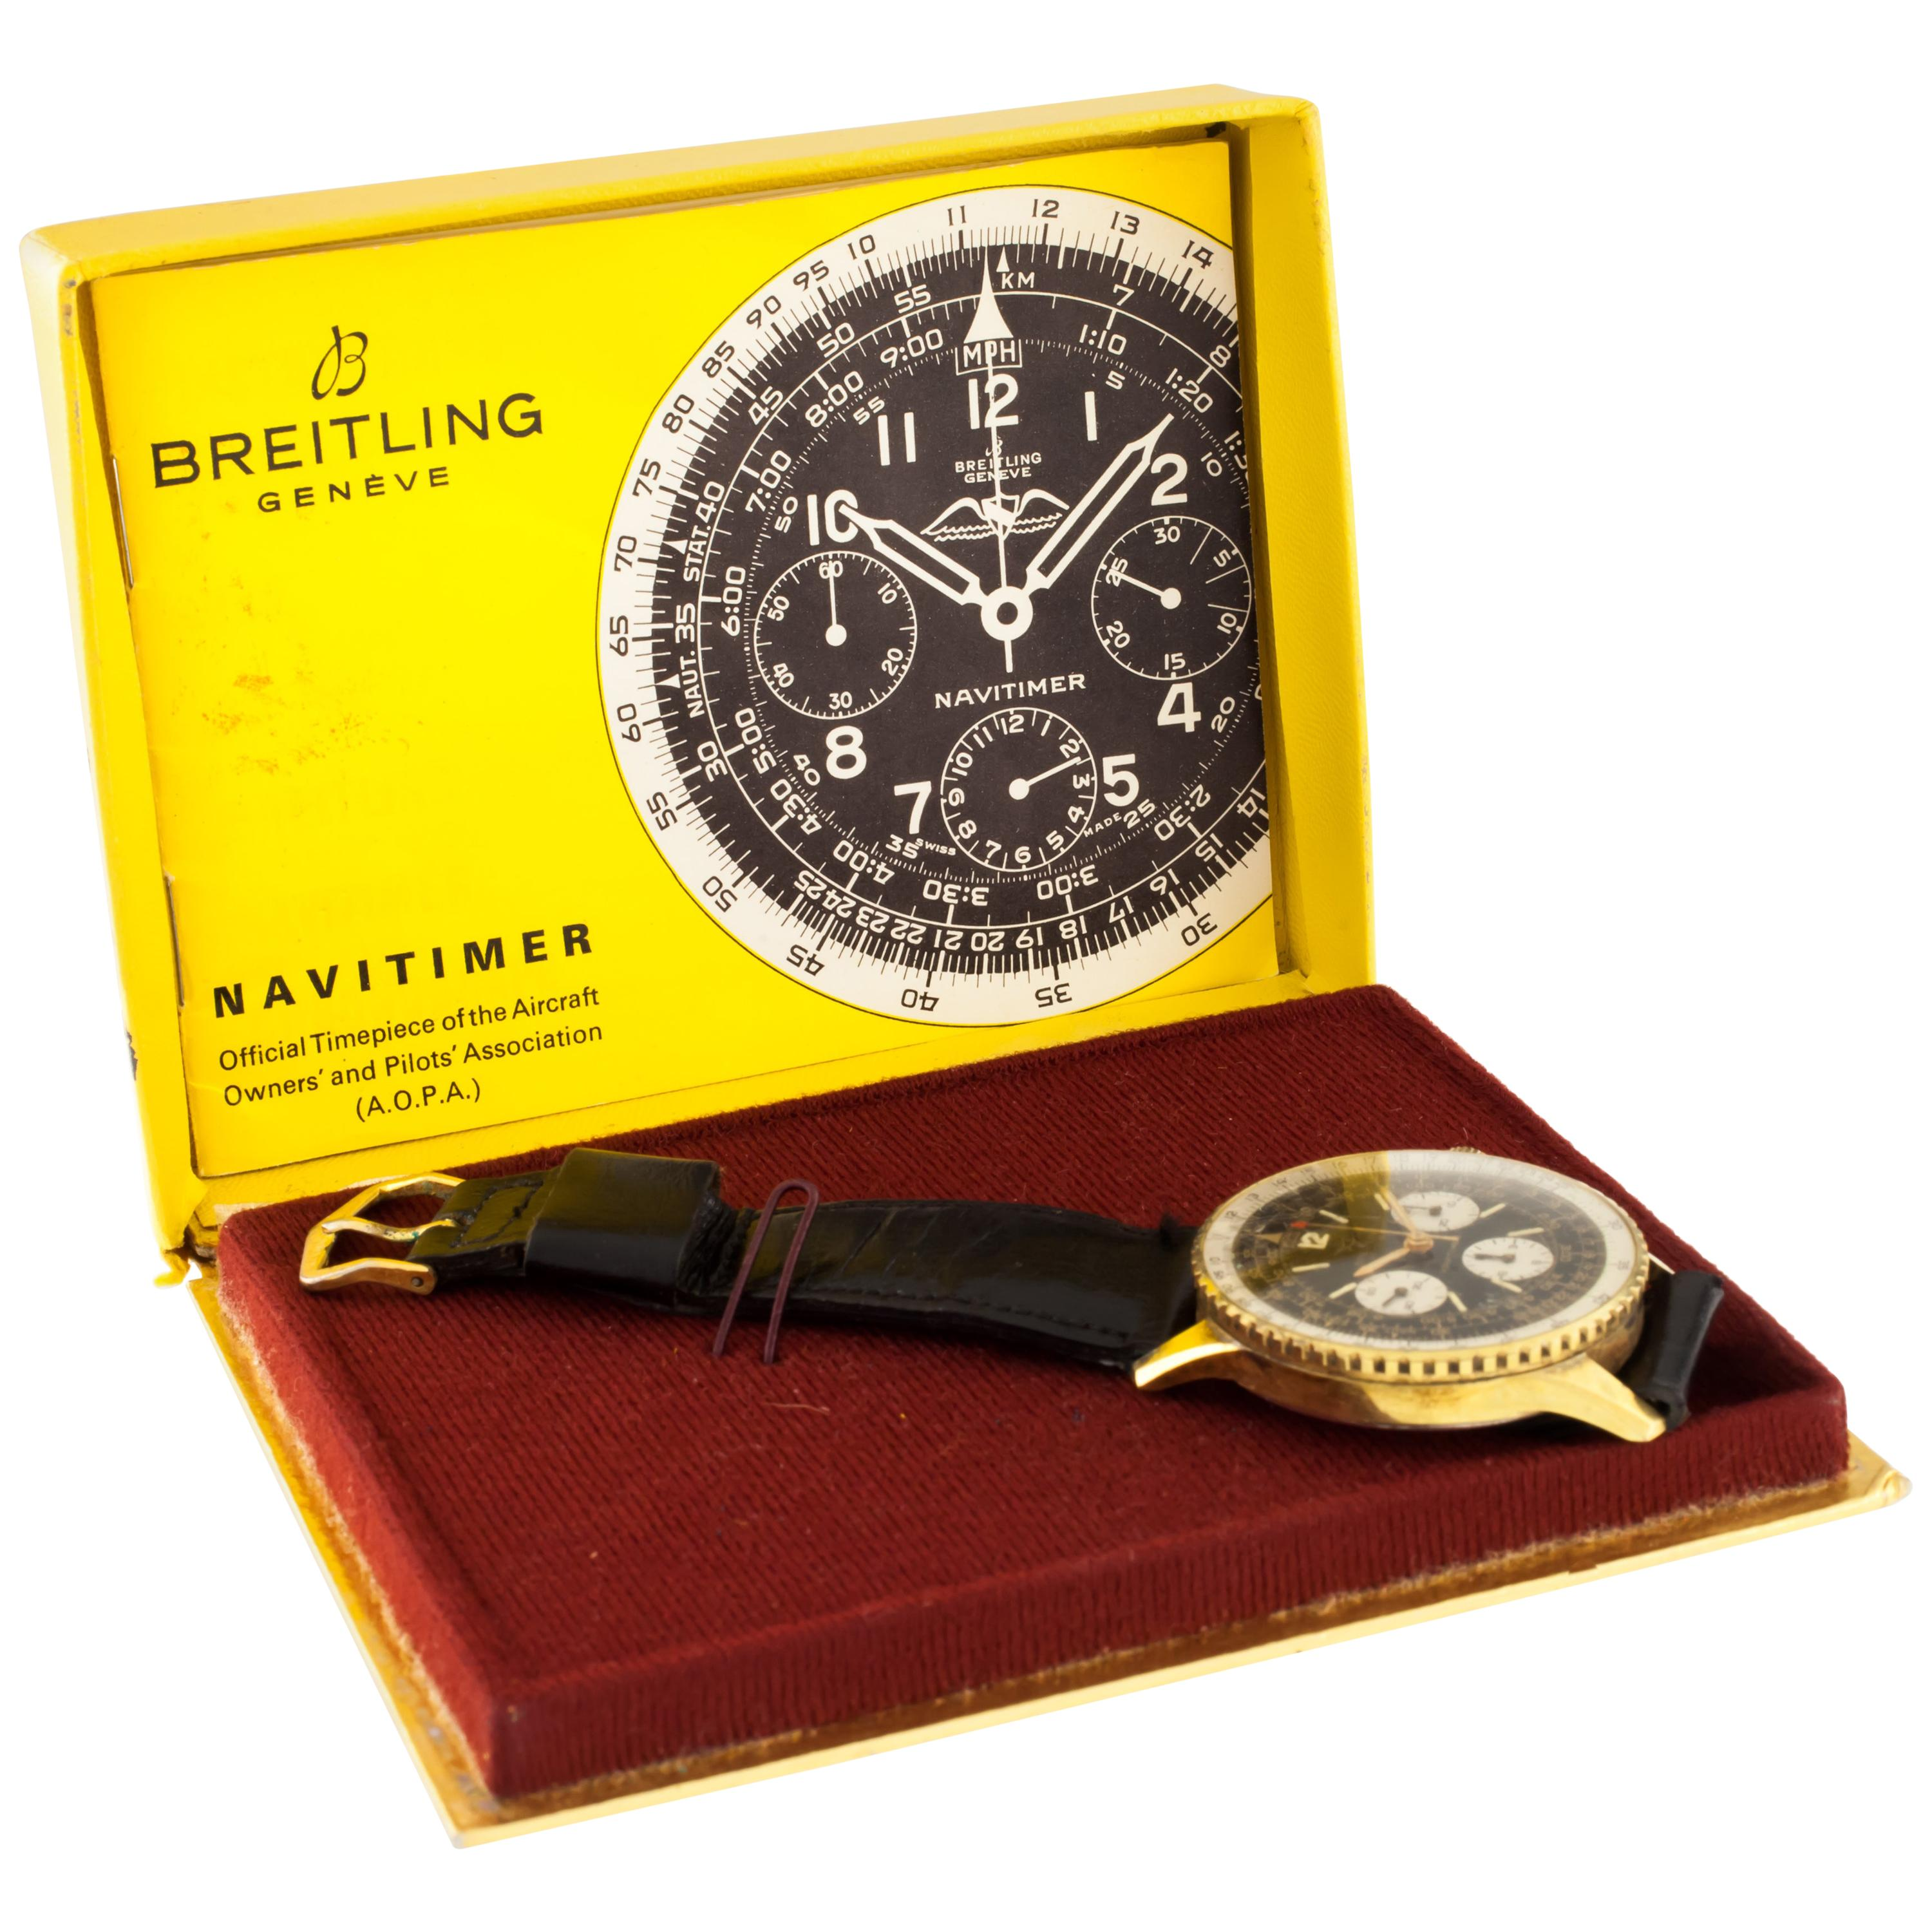 Breitling Navitimer Gold-Plated Chronograph Watch 806 with Box and Papers